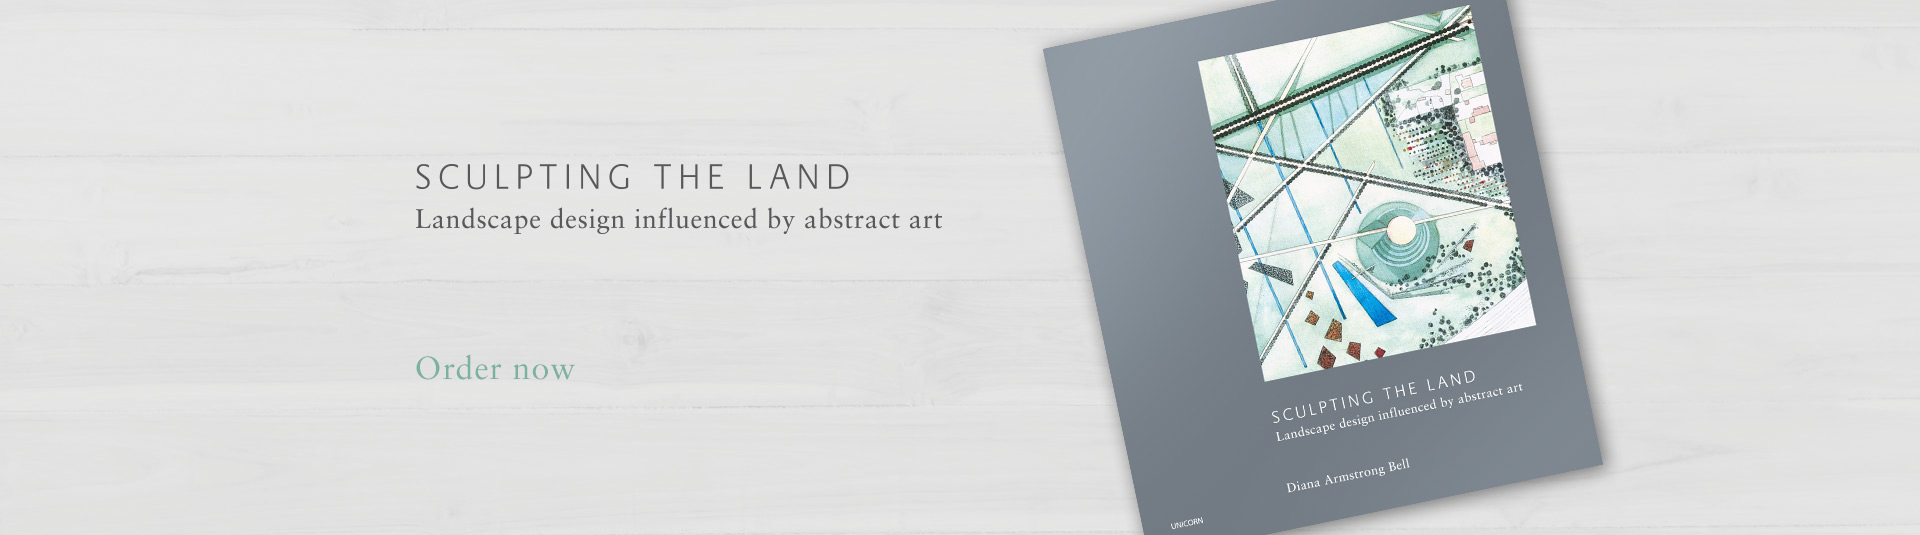 Sculpting the Land book by Diana Armstrong Bell